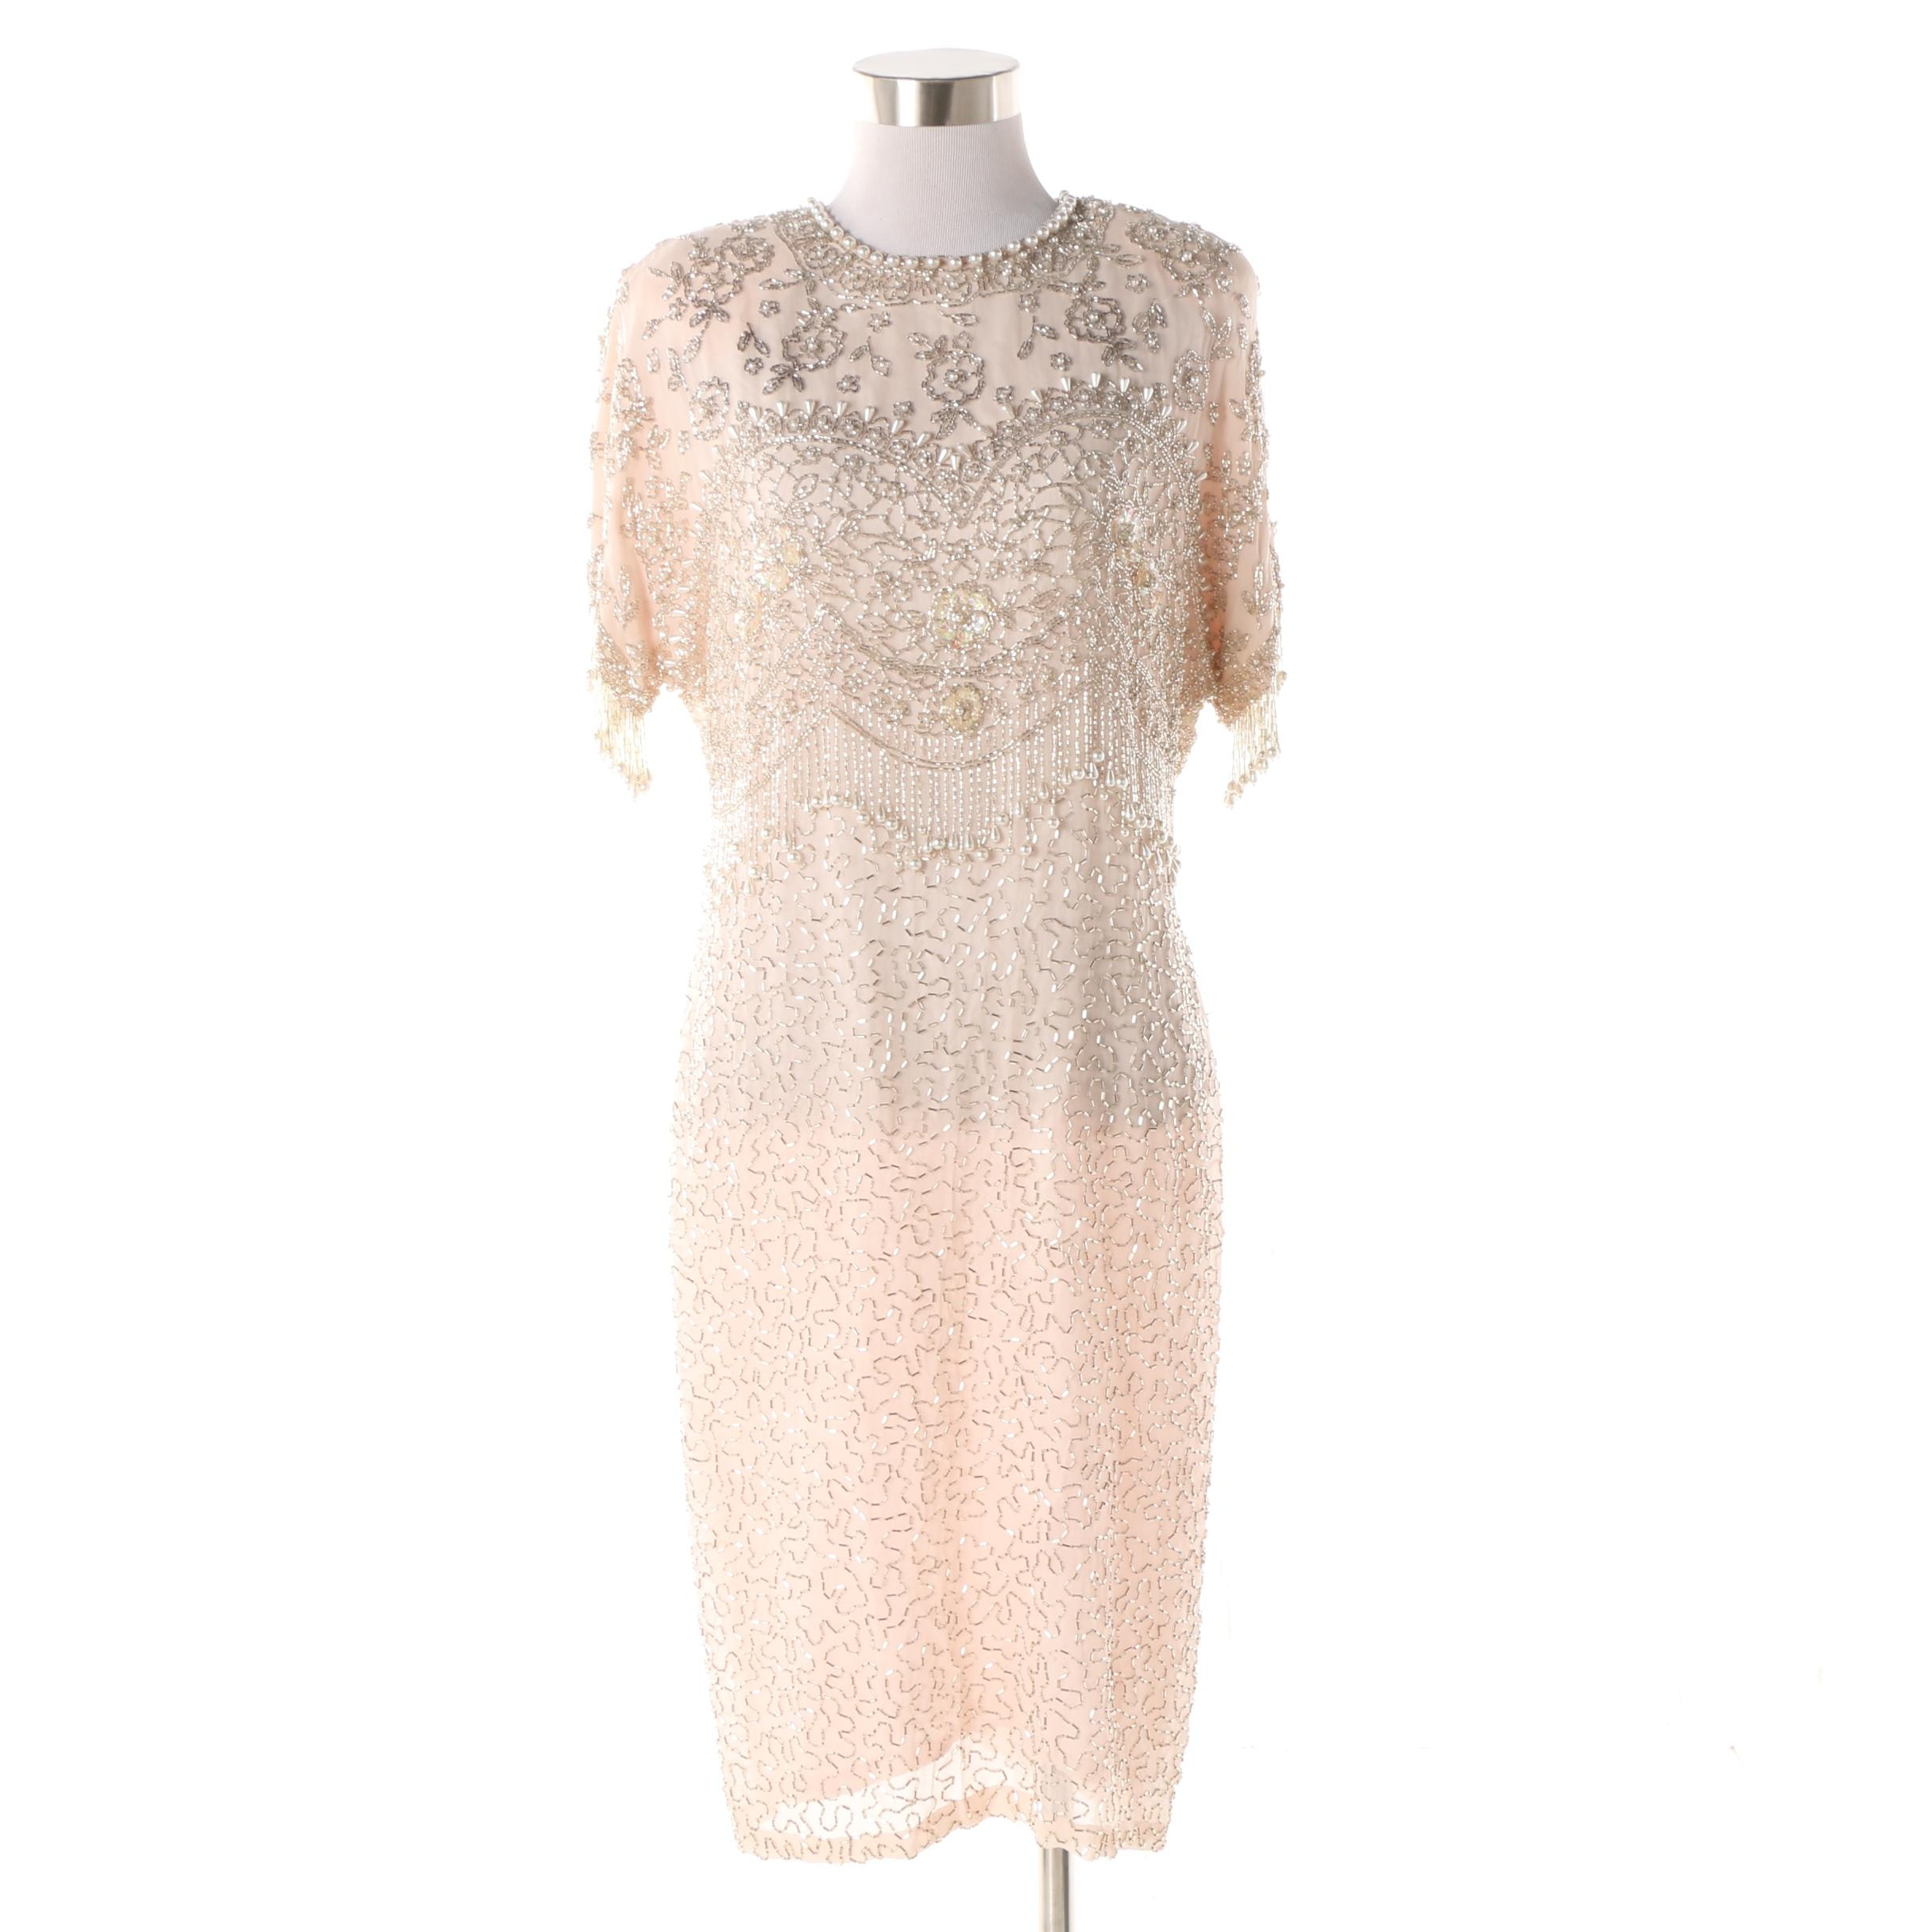 1980s Vintage Black Tie Oleg Cassini Embellished Blush Pink Silk Evening Gown